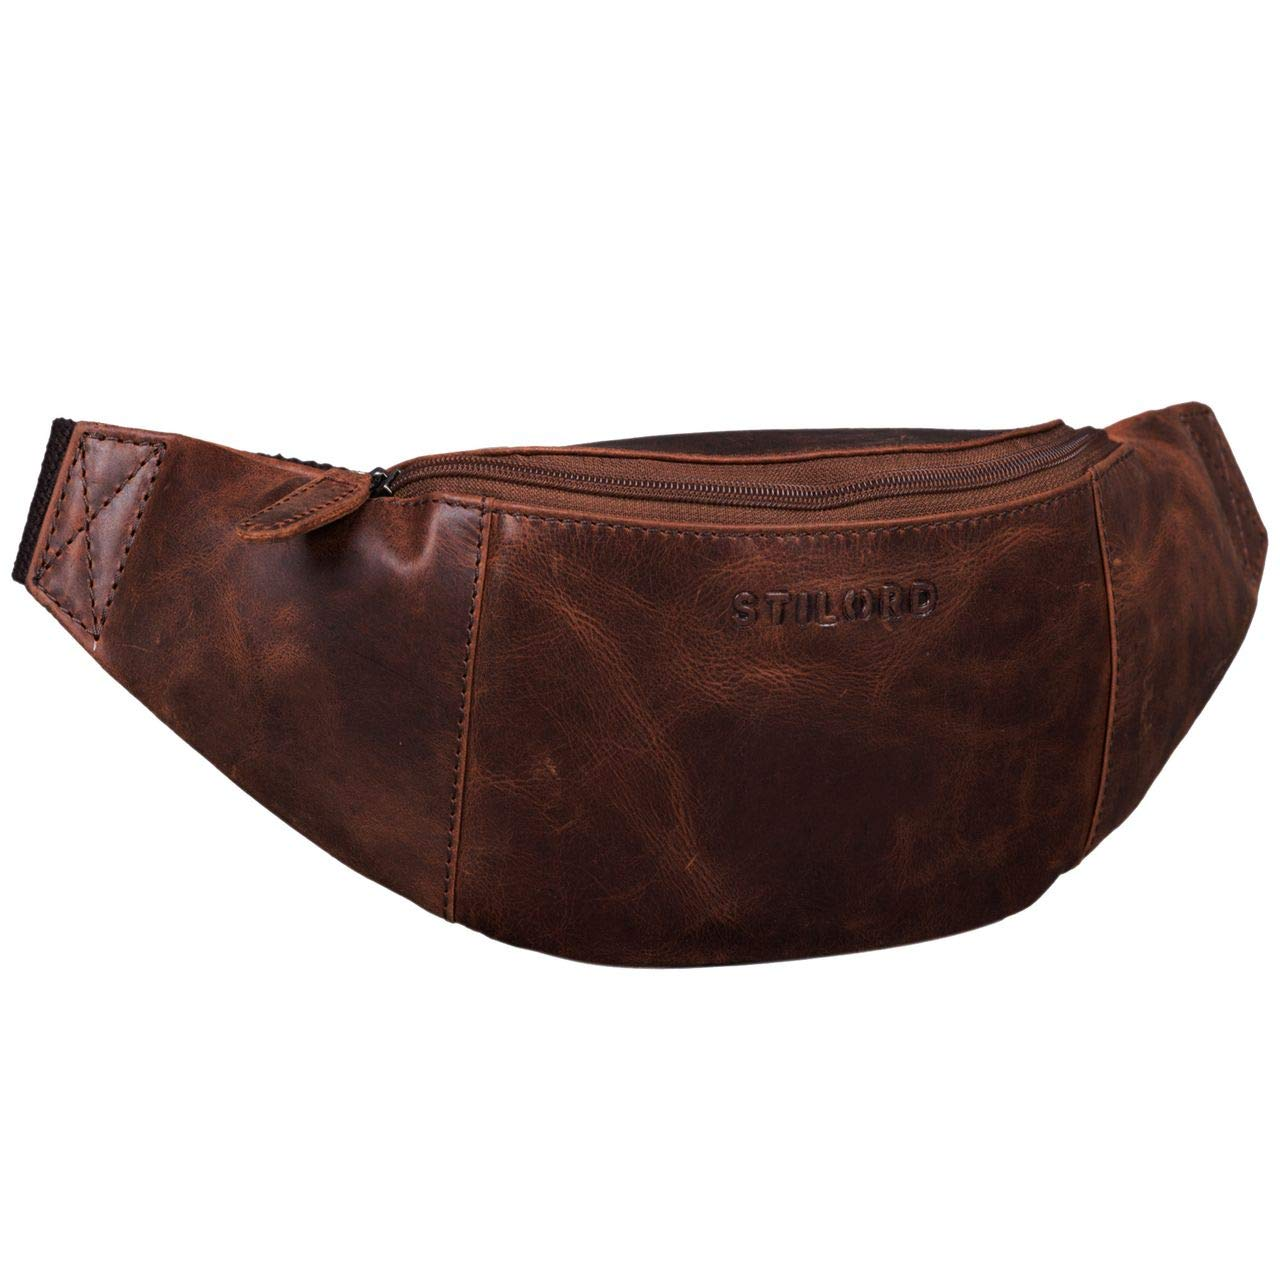 STILORD 'Shawn' Large Bum Bag Leather Pouch Bag Fanny Pack Vintage Belt Bag for Men and Women Festival Travel Genuine Leather, Colour:Antique - Used